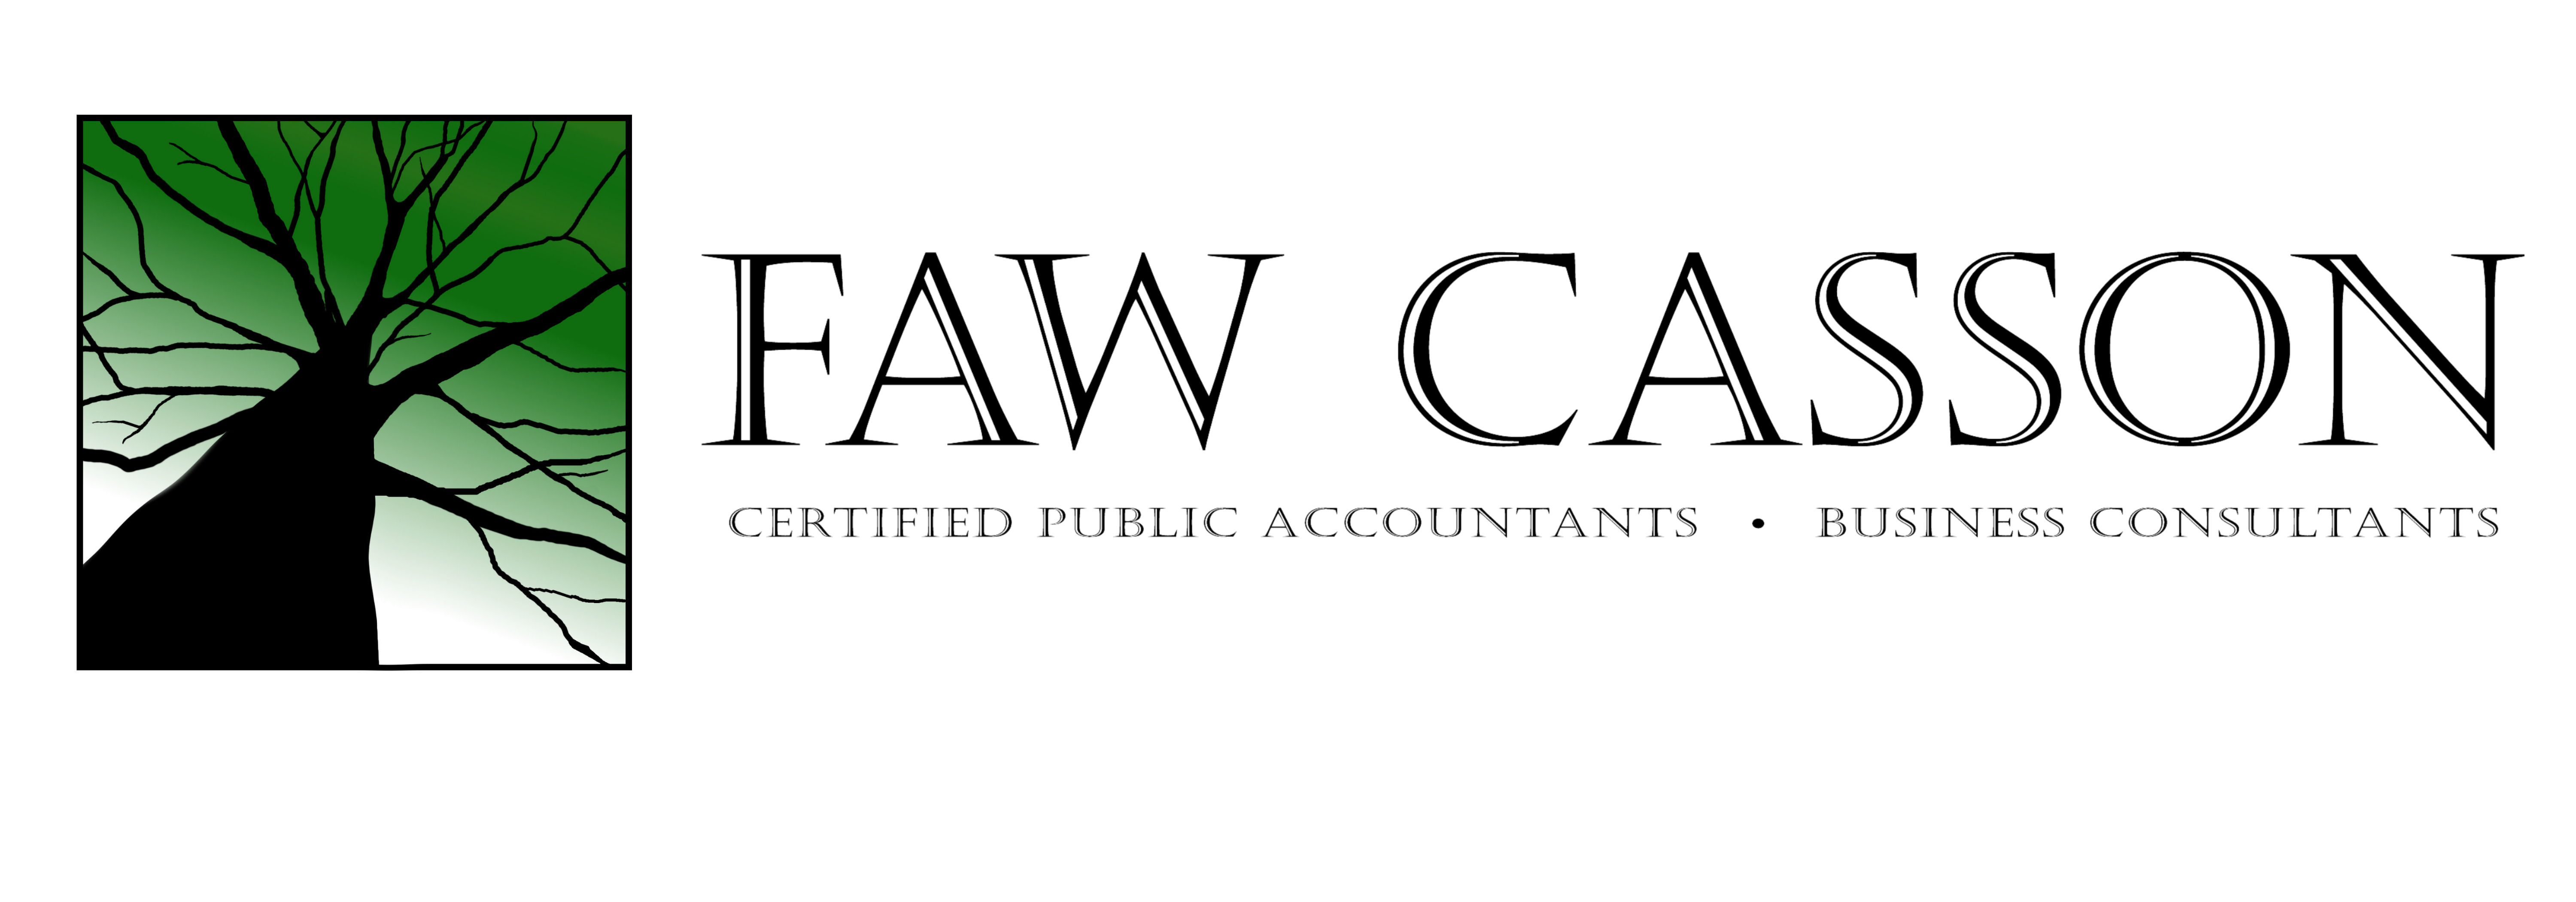 Faw Casson & Co. LLP